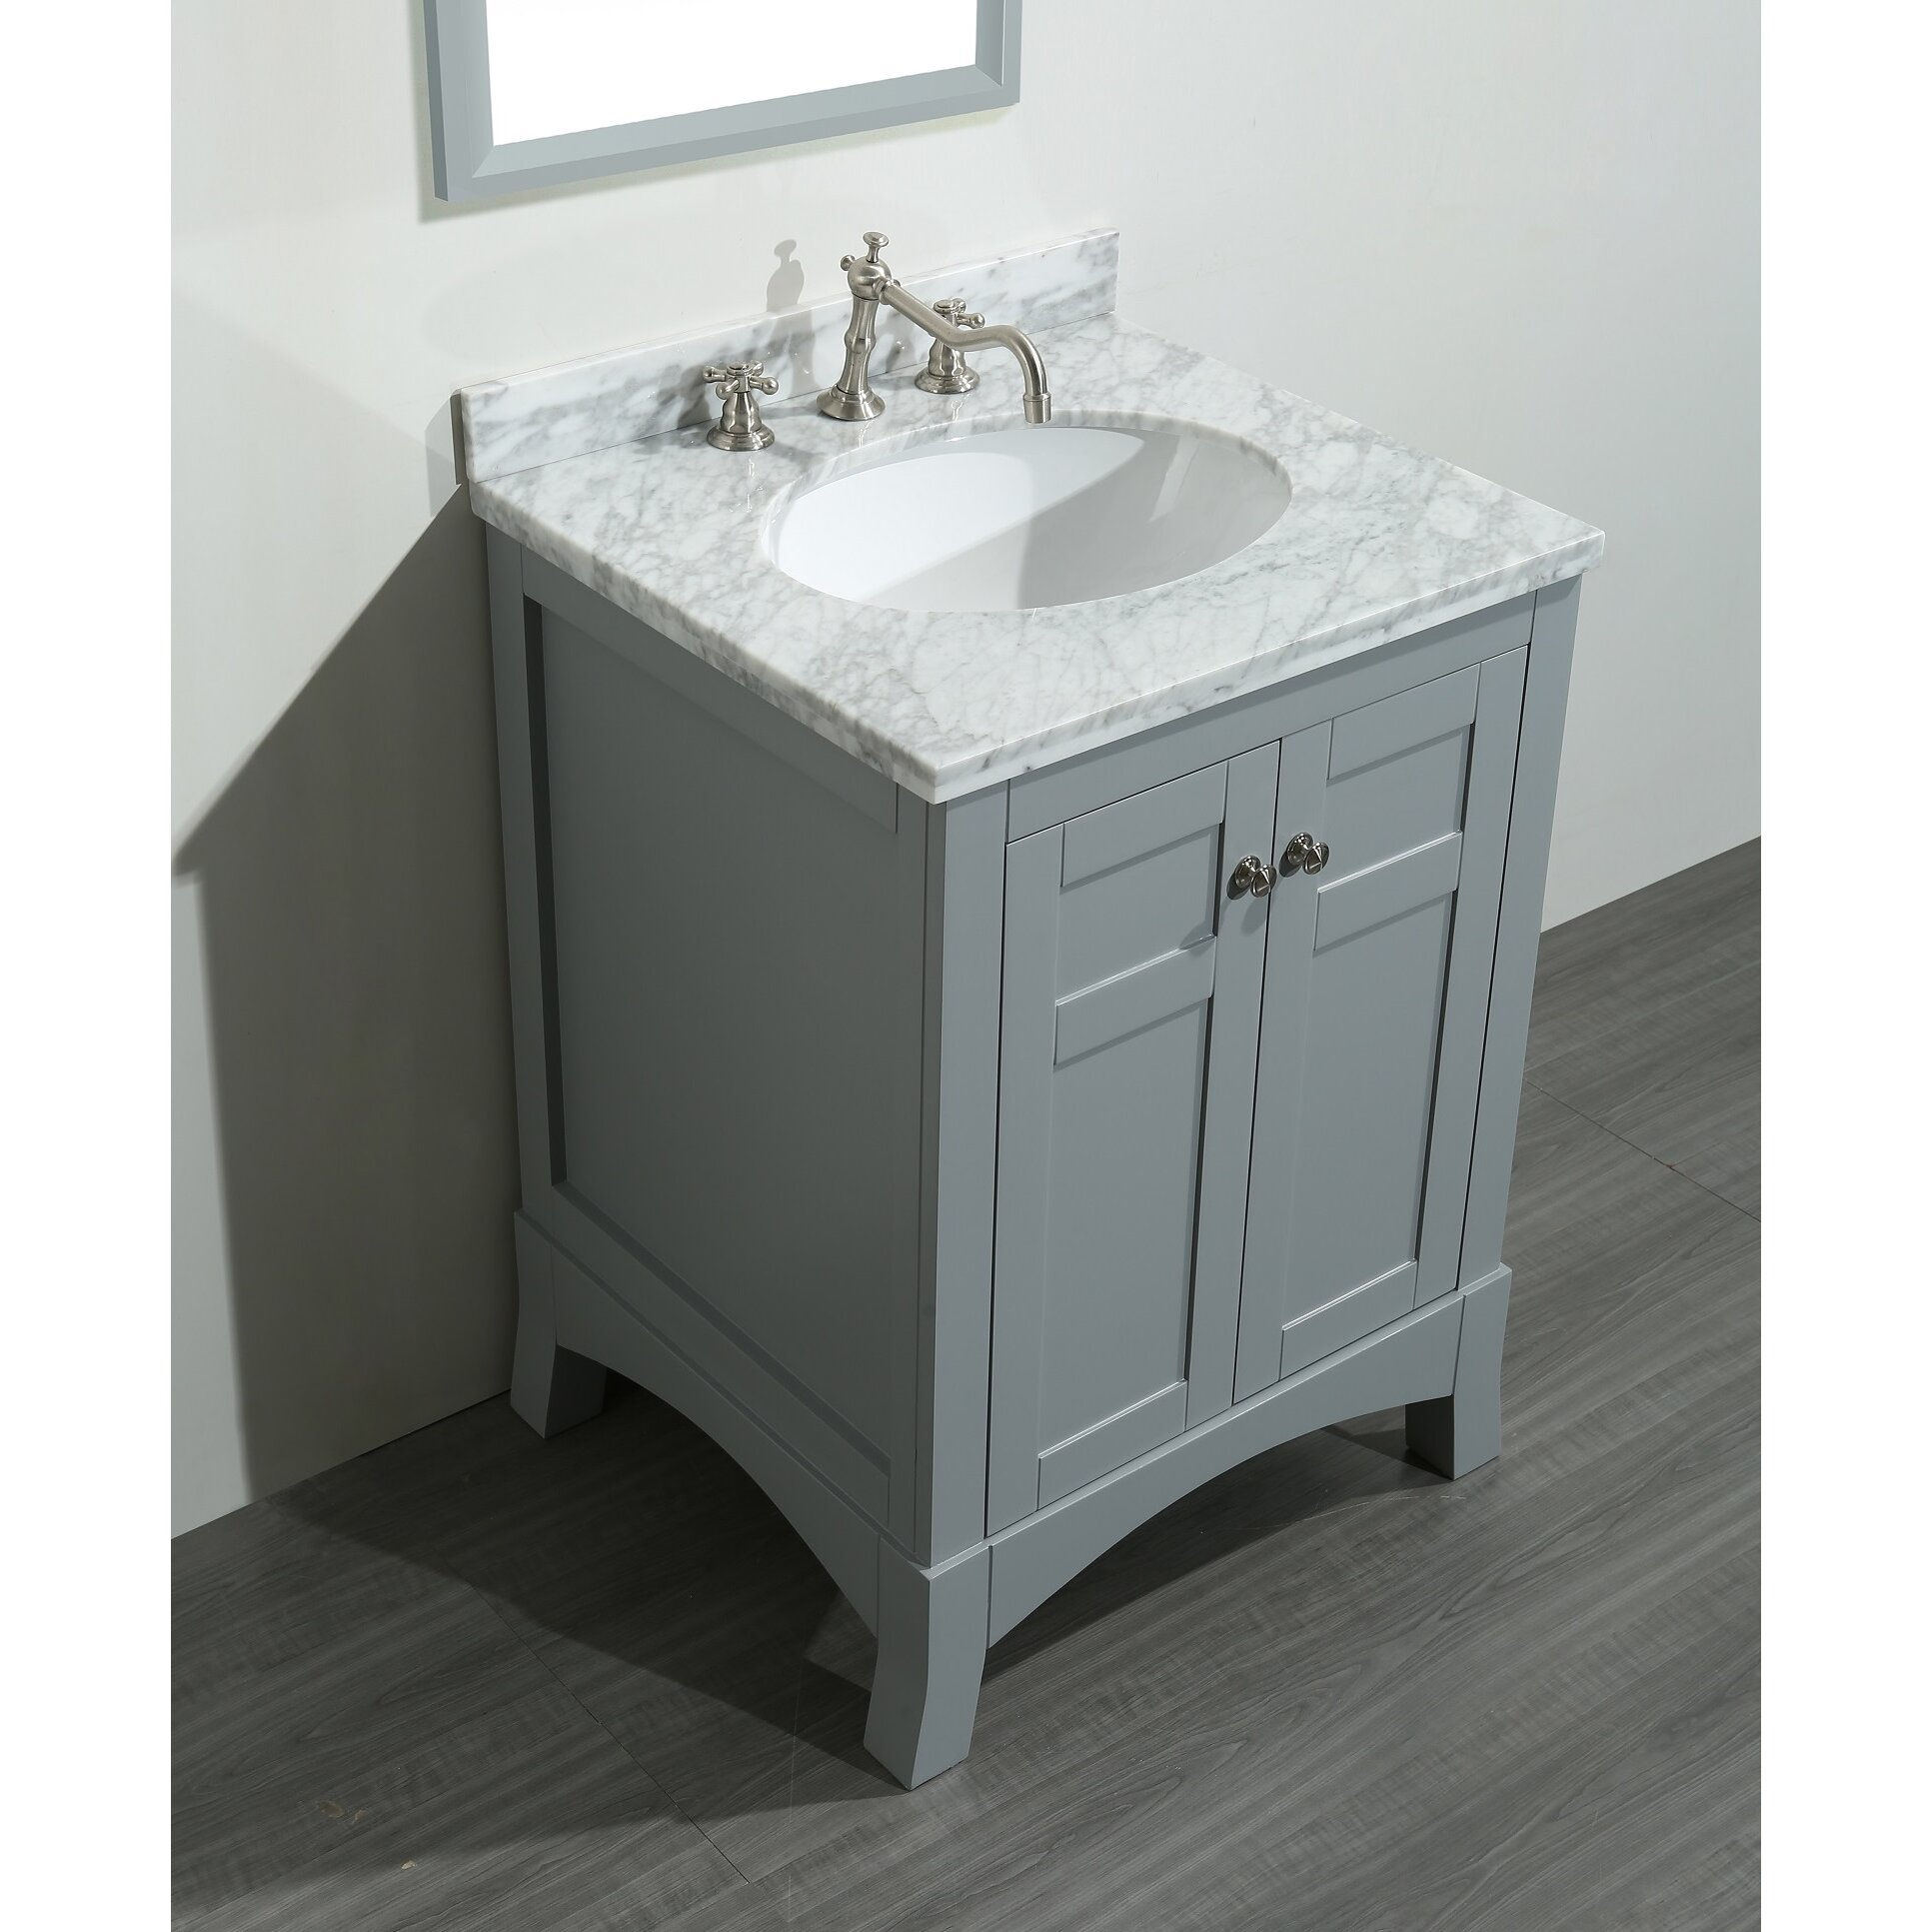 "Grey And White Marble Bathroom: Eviva New York 24"" Single Bathroom Vanity Set & Reviews"